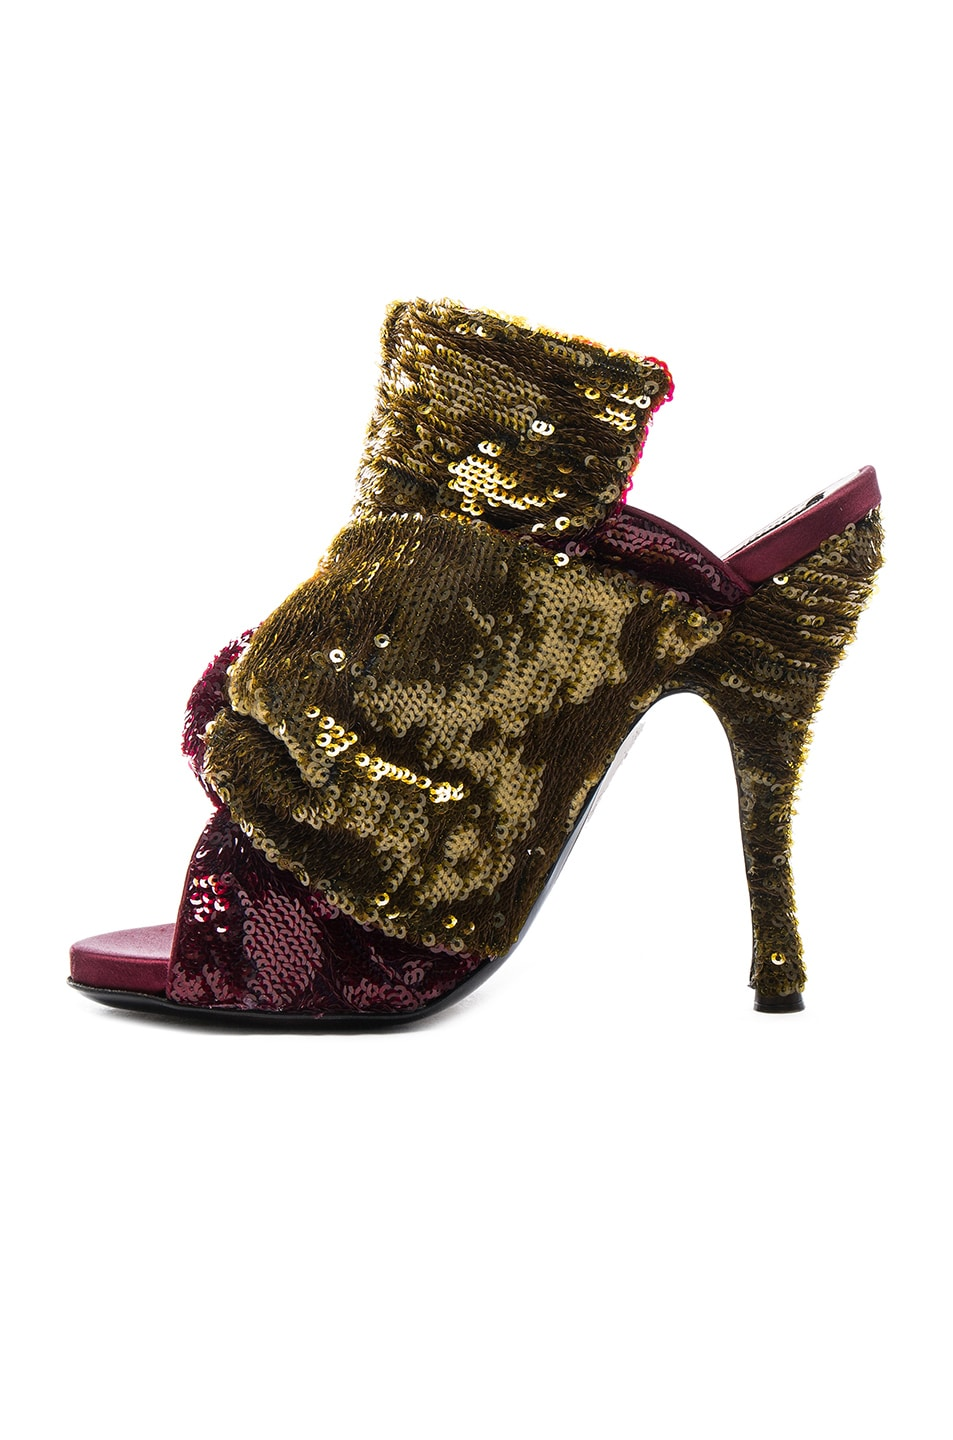 8a6f490aed41 Image 5 of No. 21 Sequin Embellished Bow Mules in Bordeaux   Gold